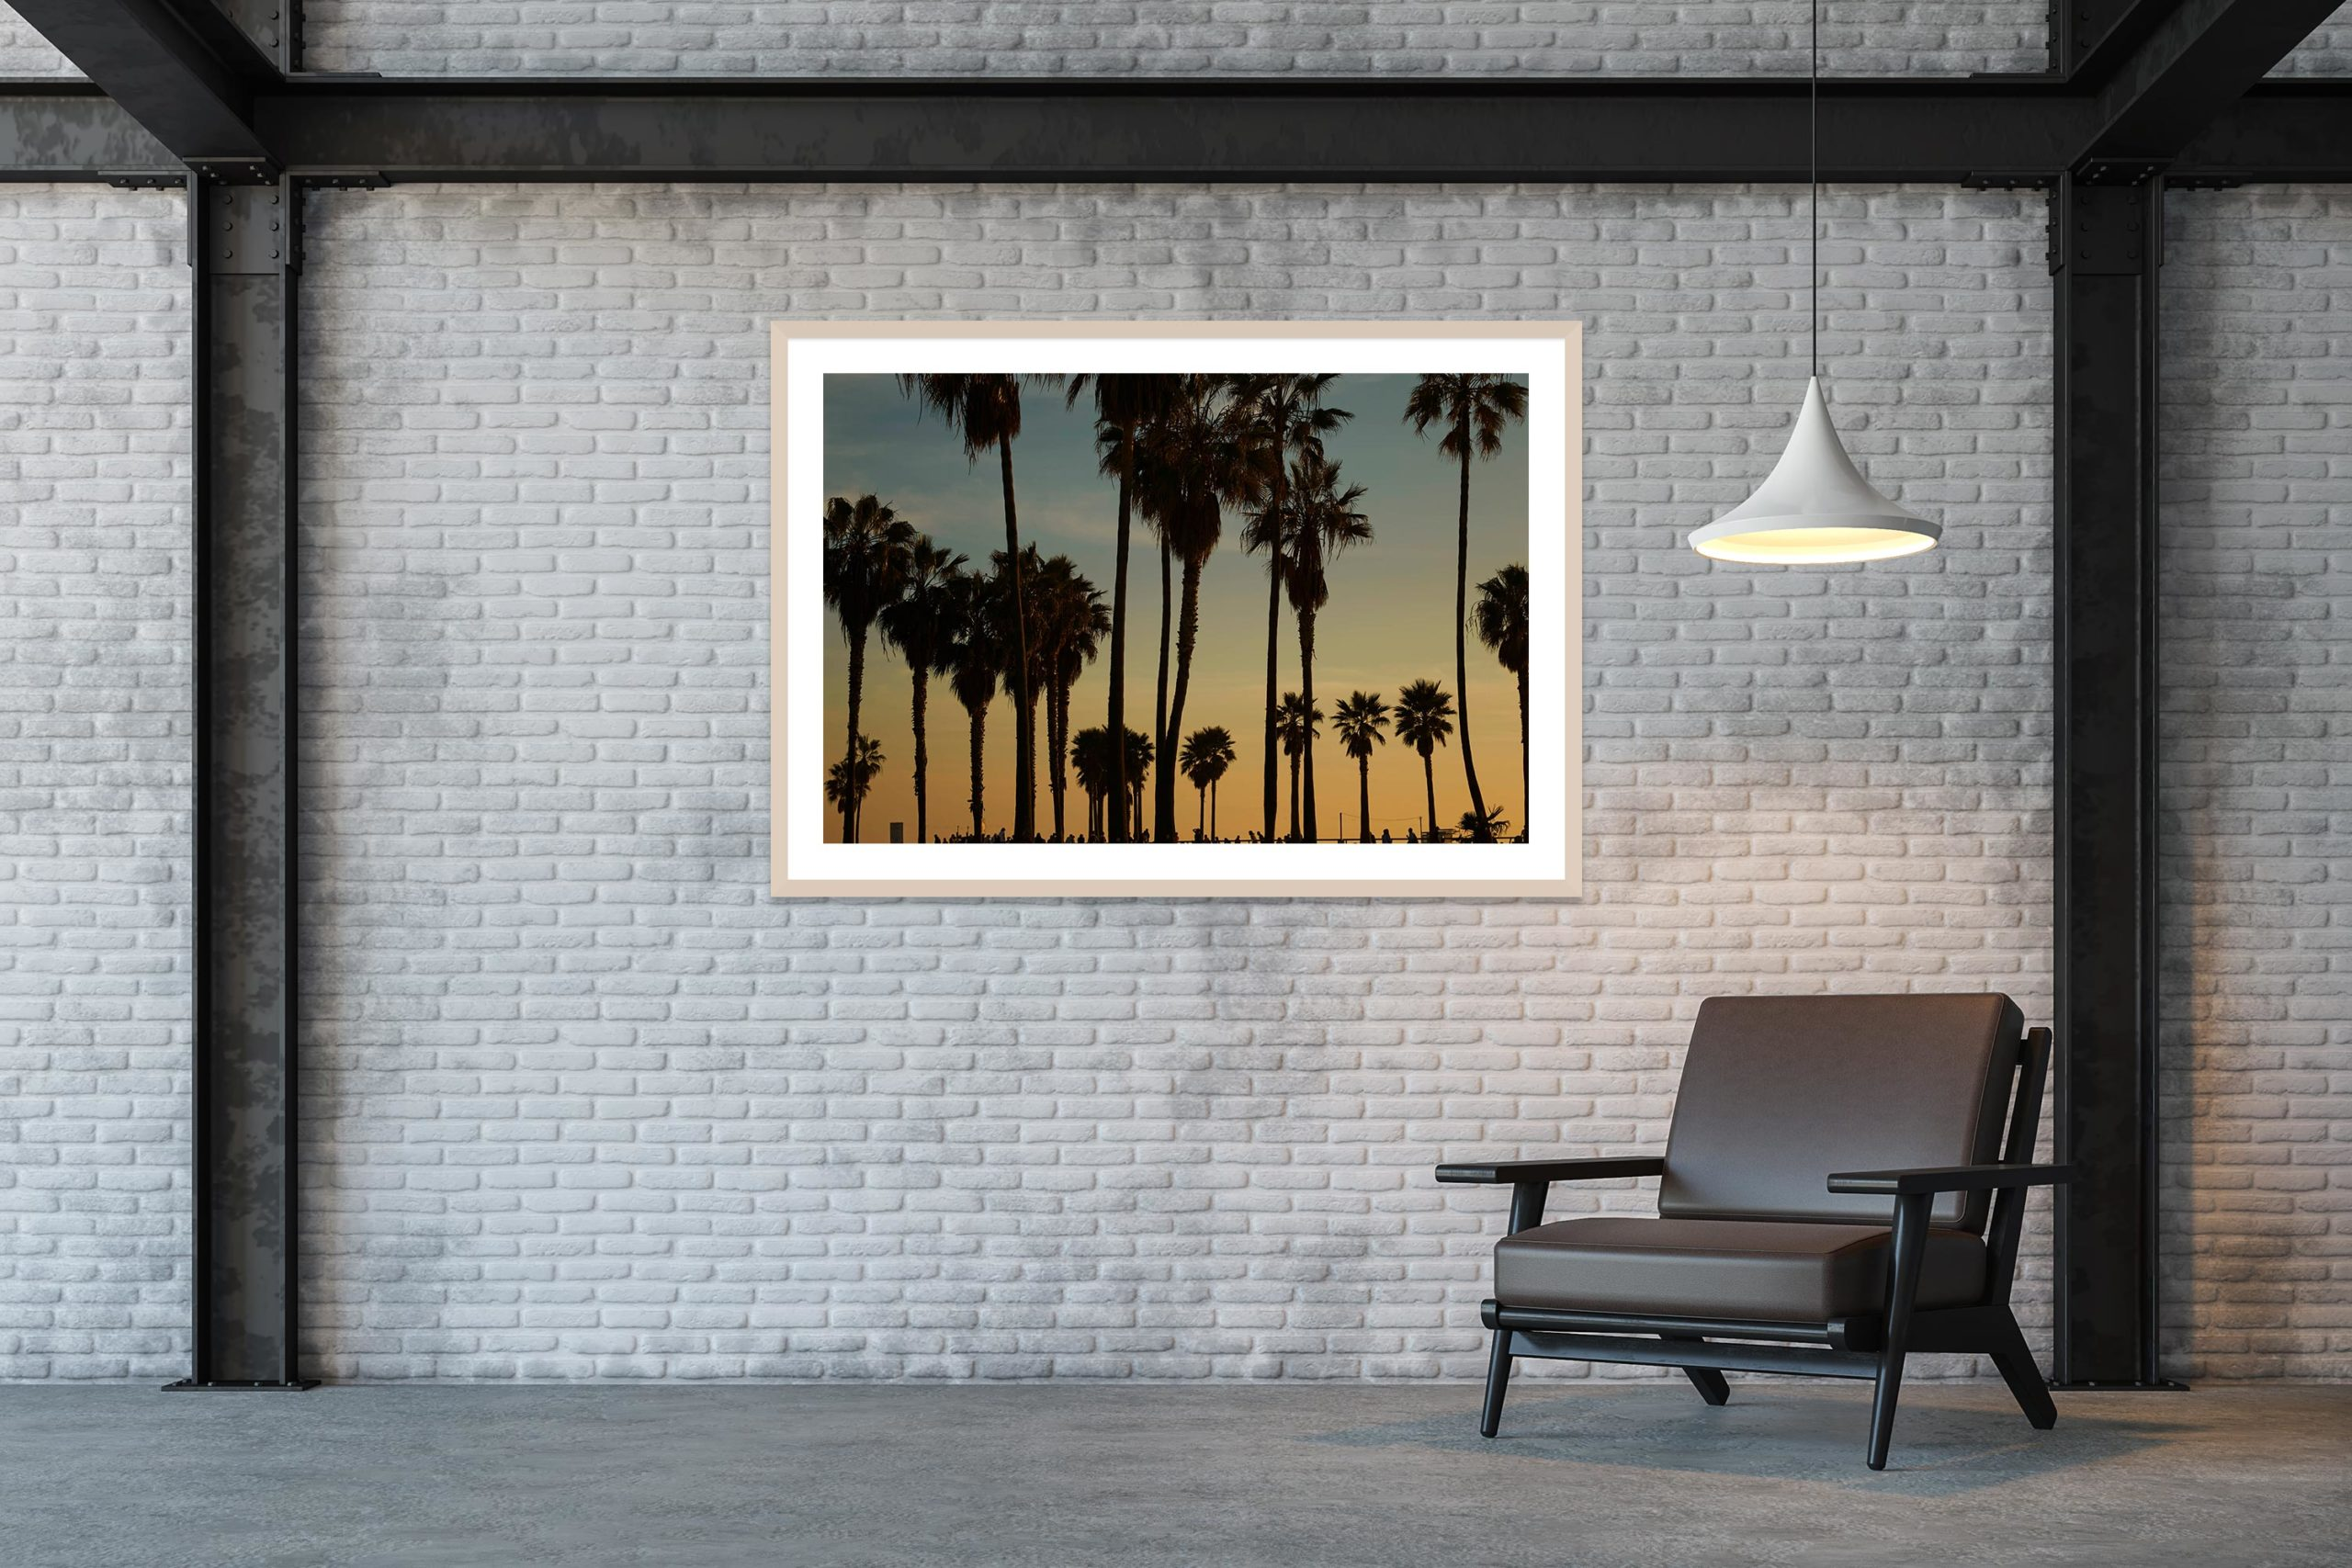 Palms - Timber Frame - Skate Park, Venice Beach Collection - Fine Art Photography by Toby Dixon